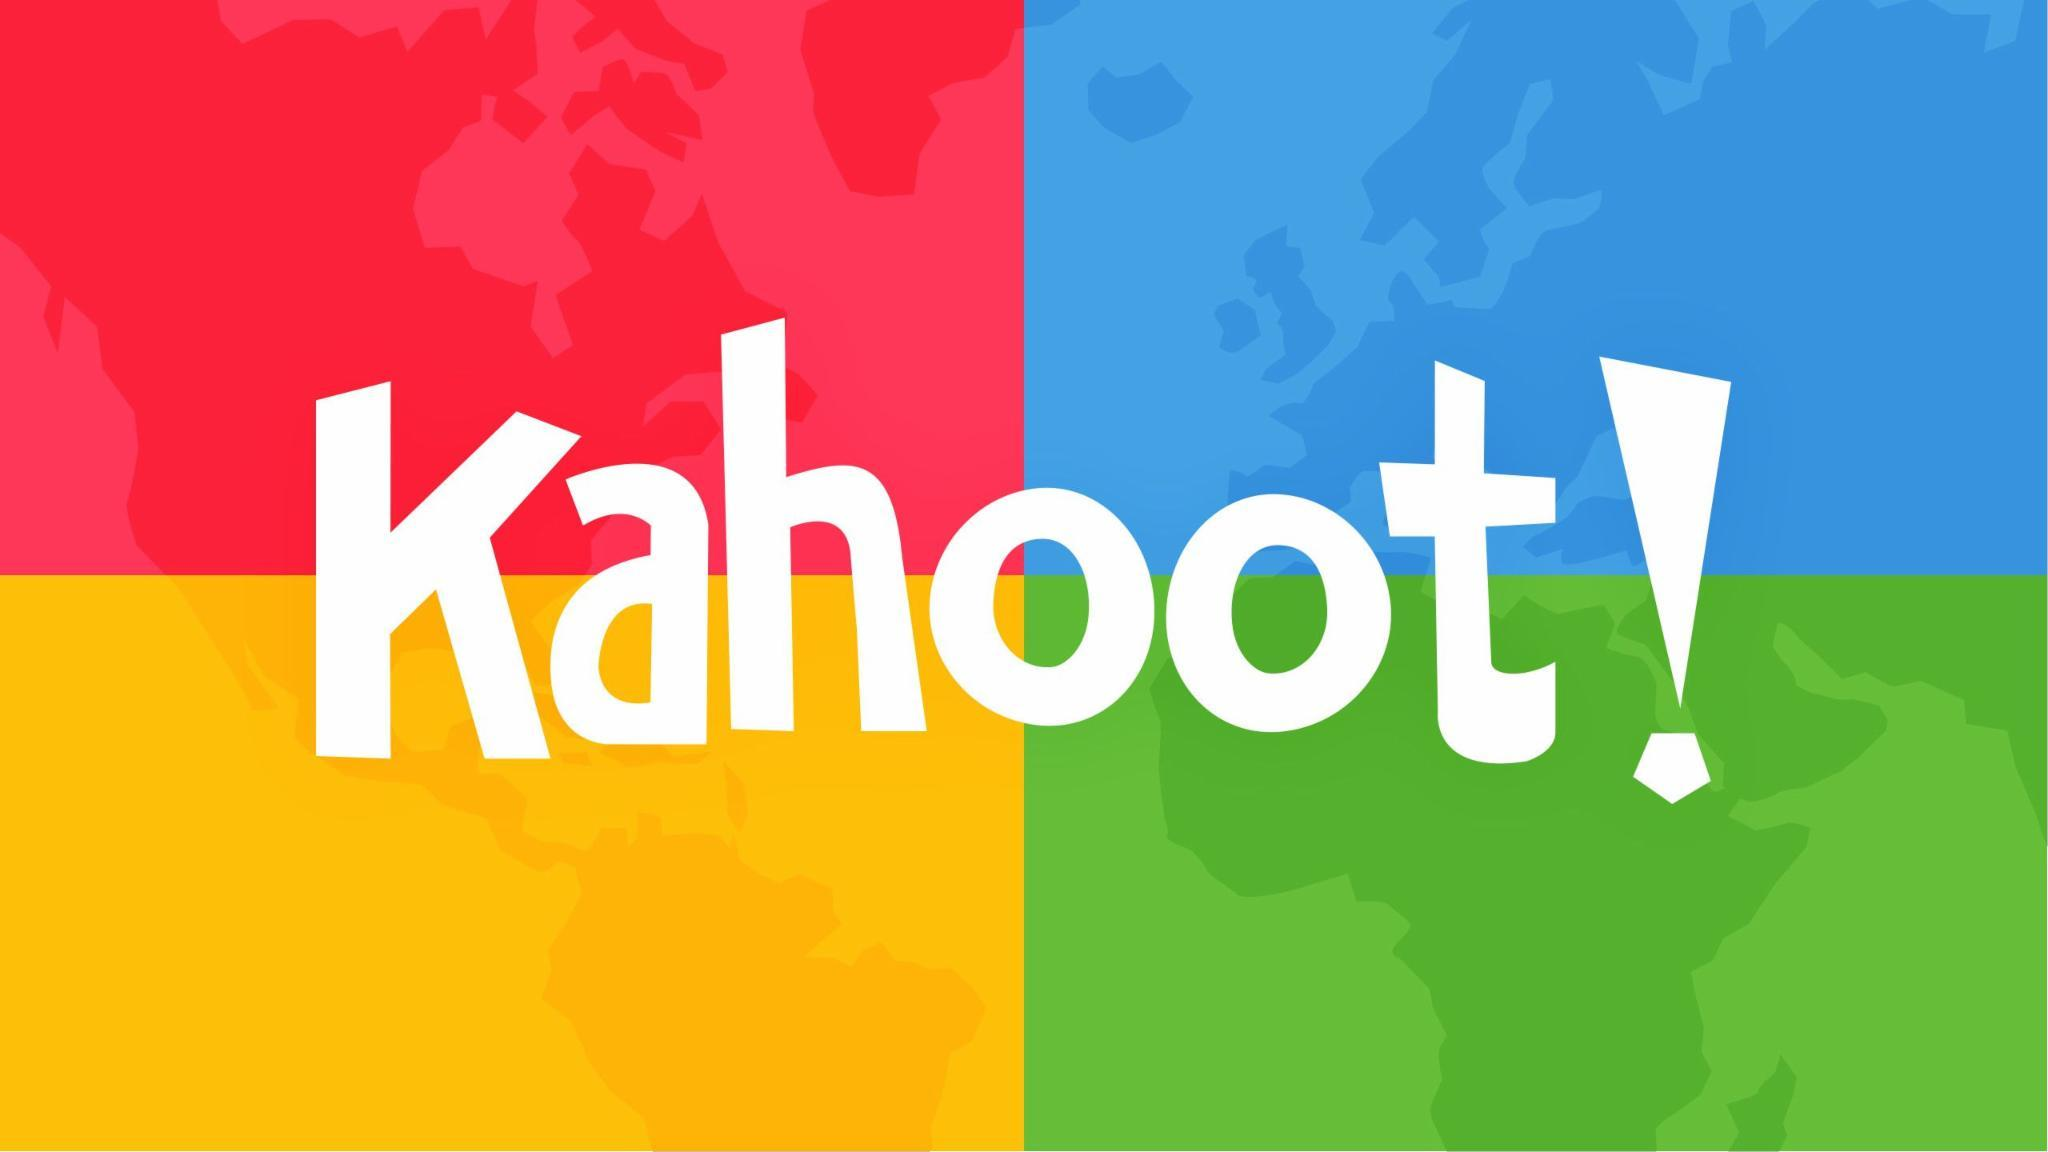 Do you guys think Kahoot's music is a bop?